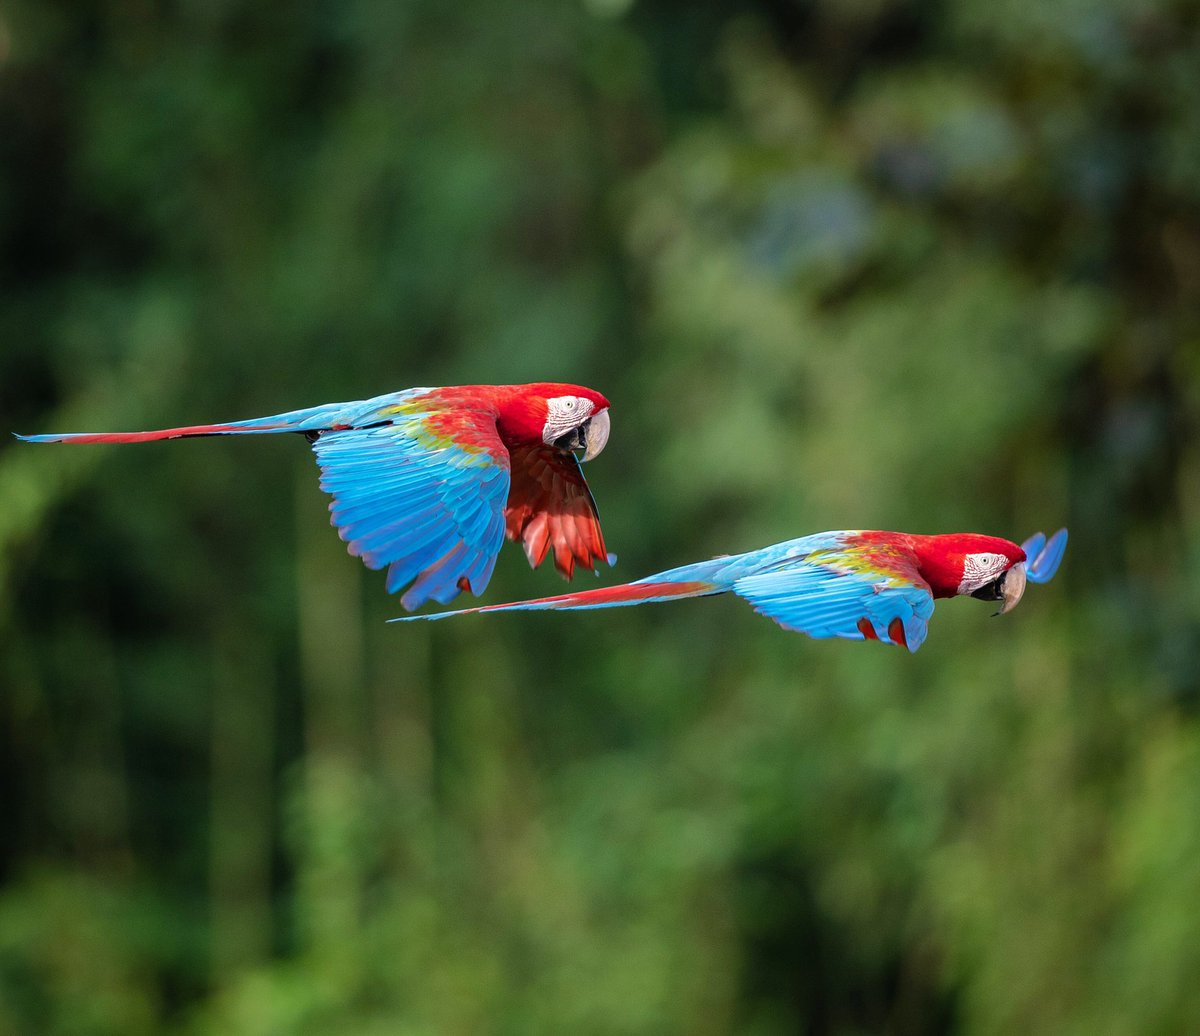 ❤️ Macaws typically mate for life and I think that's kinda great. Oh and they make it look goooood.